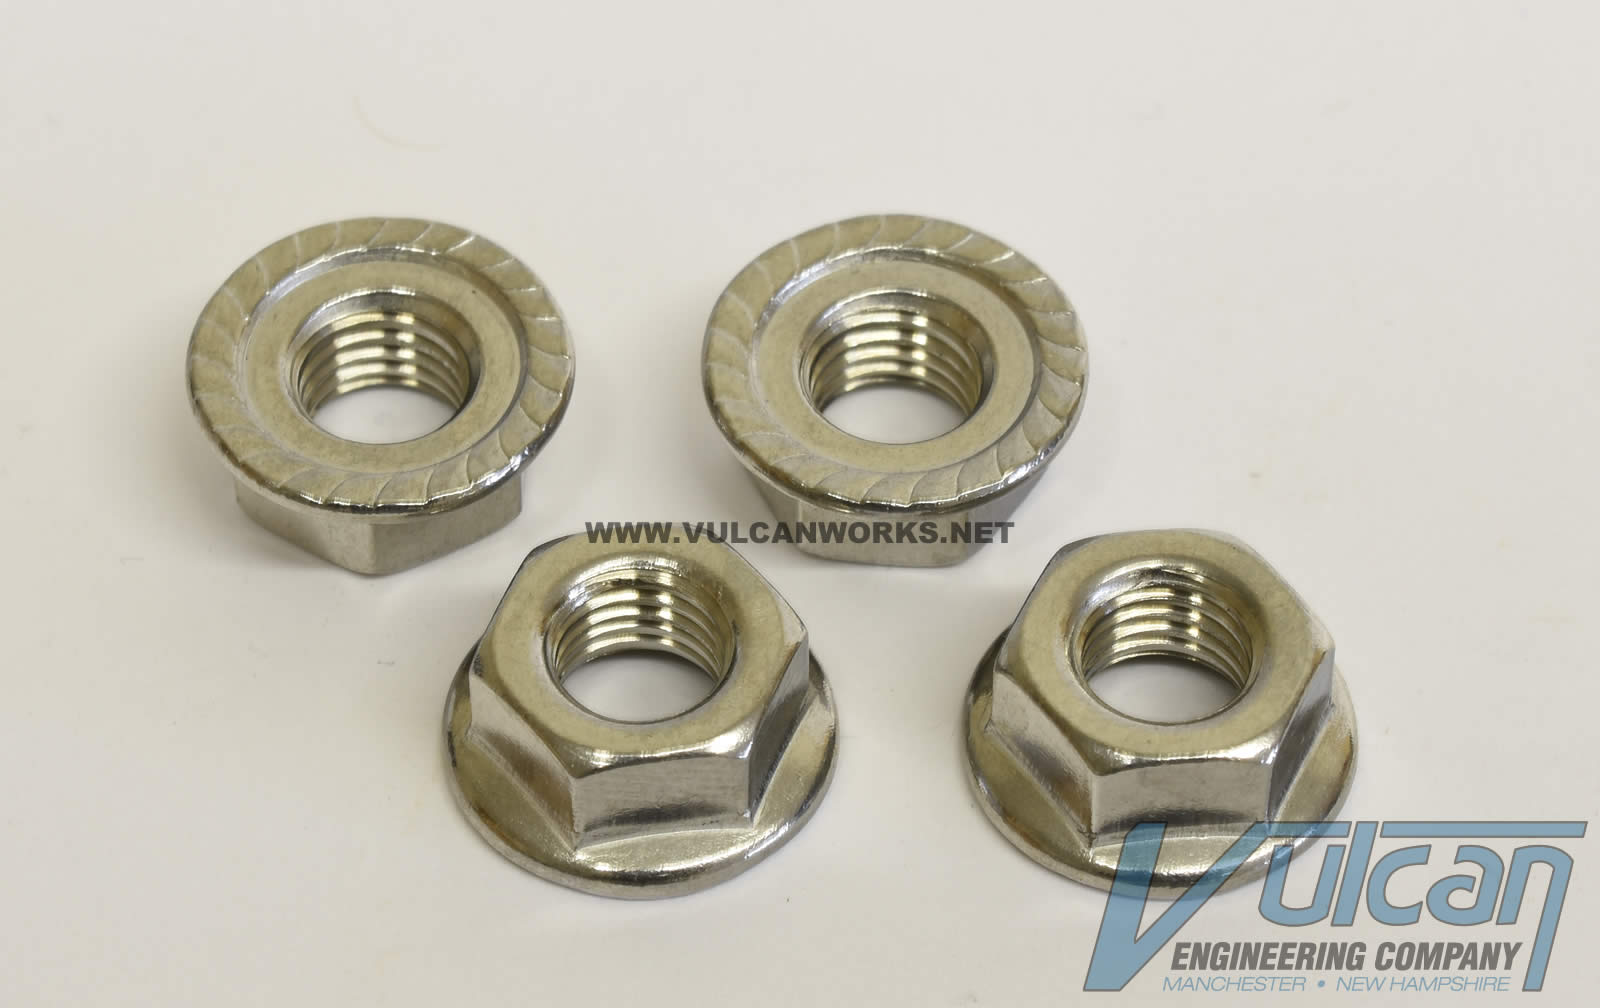 Exhaust Flange Nut Set, Stainless Steel